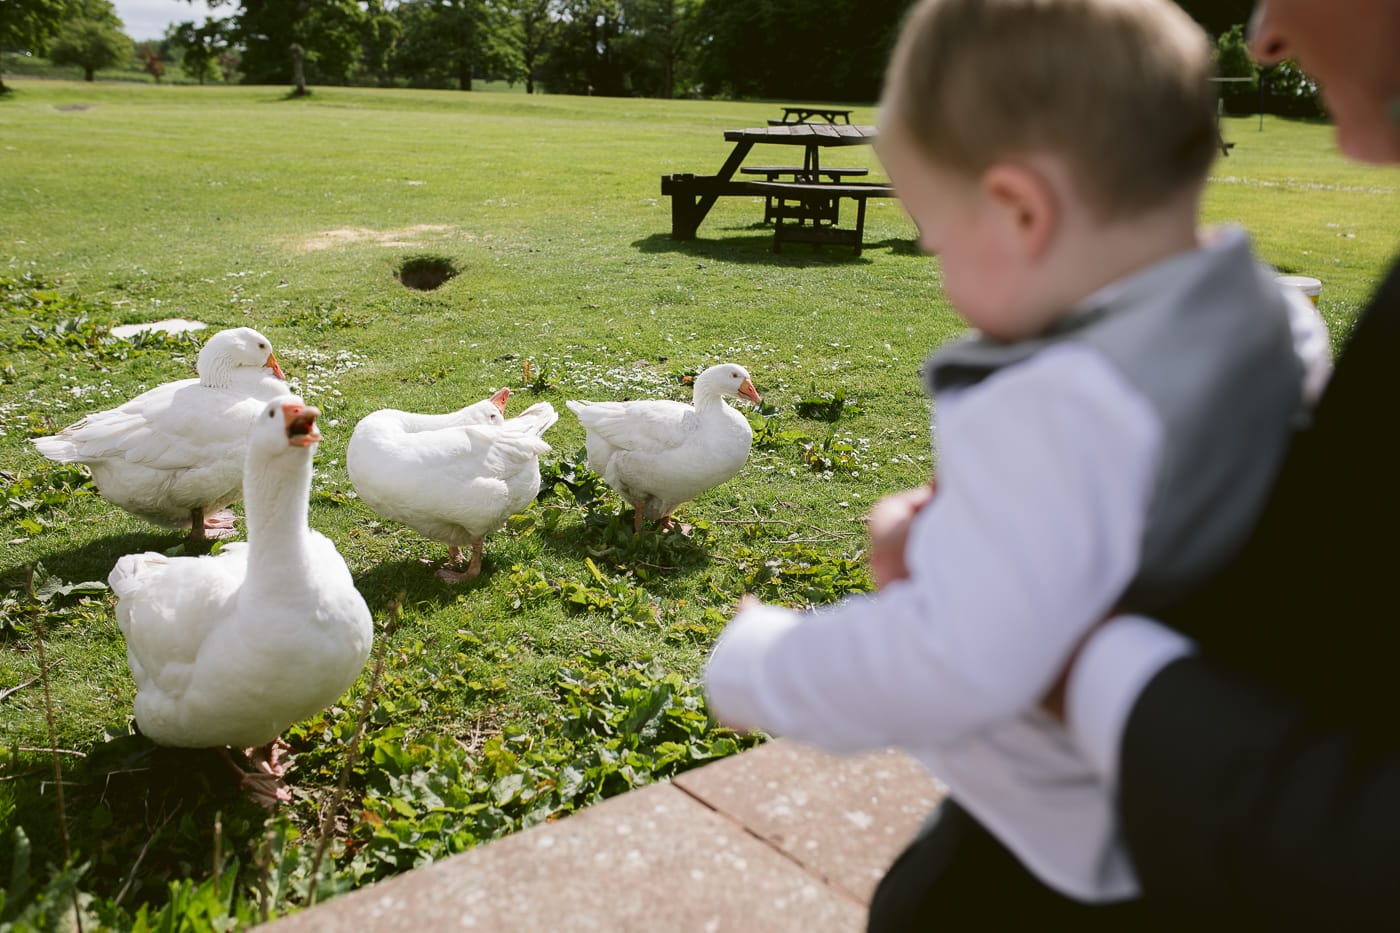 Little Boy Feeding Geese on the Grass Photography Photo Shoot